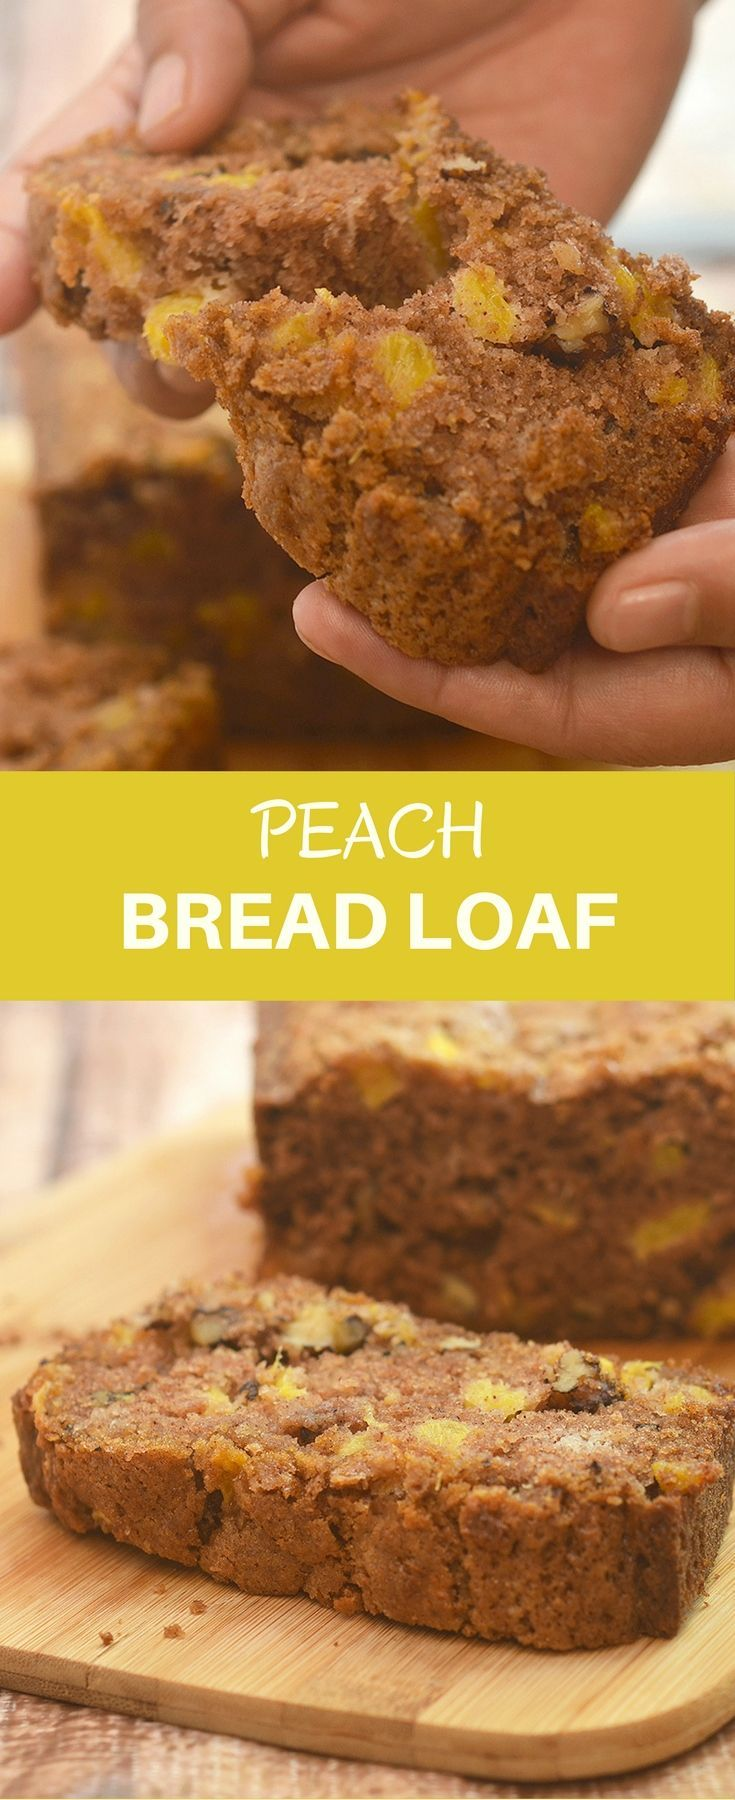 Peach Bread Loaf deliciously studded with fresh peach bits and bursting with warm cinnamon flavor. Super soft and moist, it's amazing for breakfast or anytime snack.